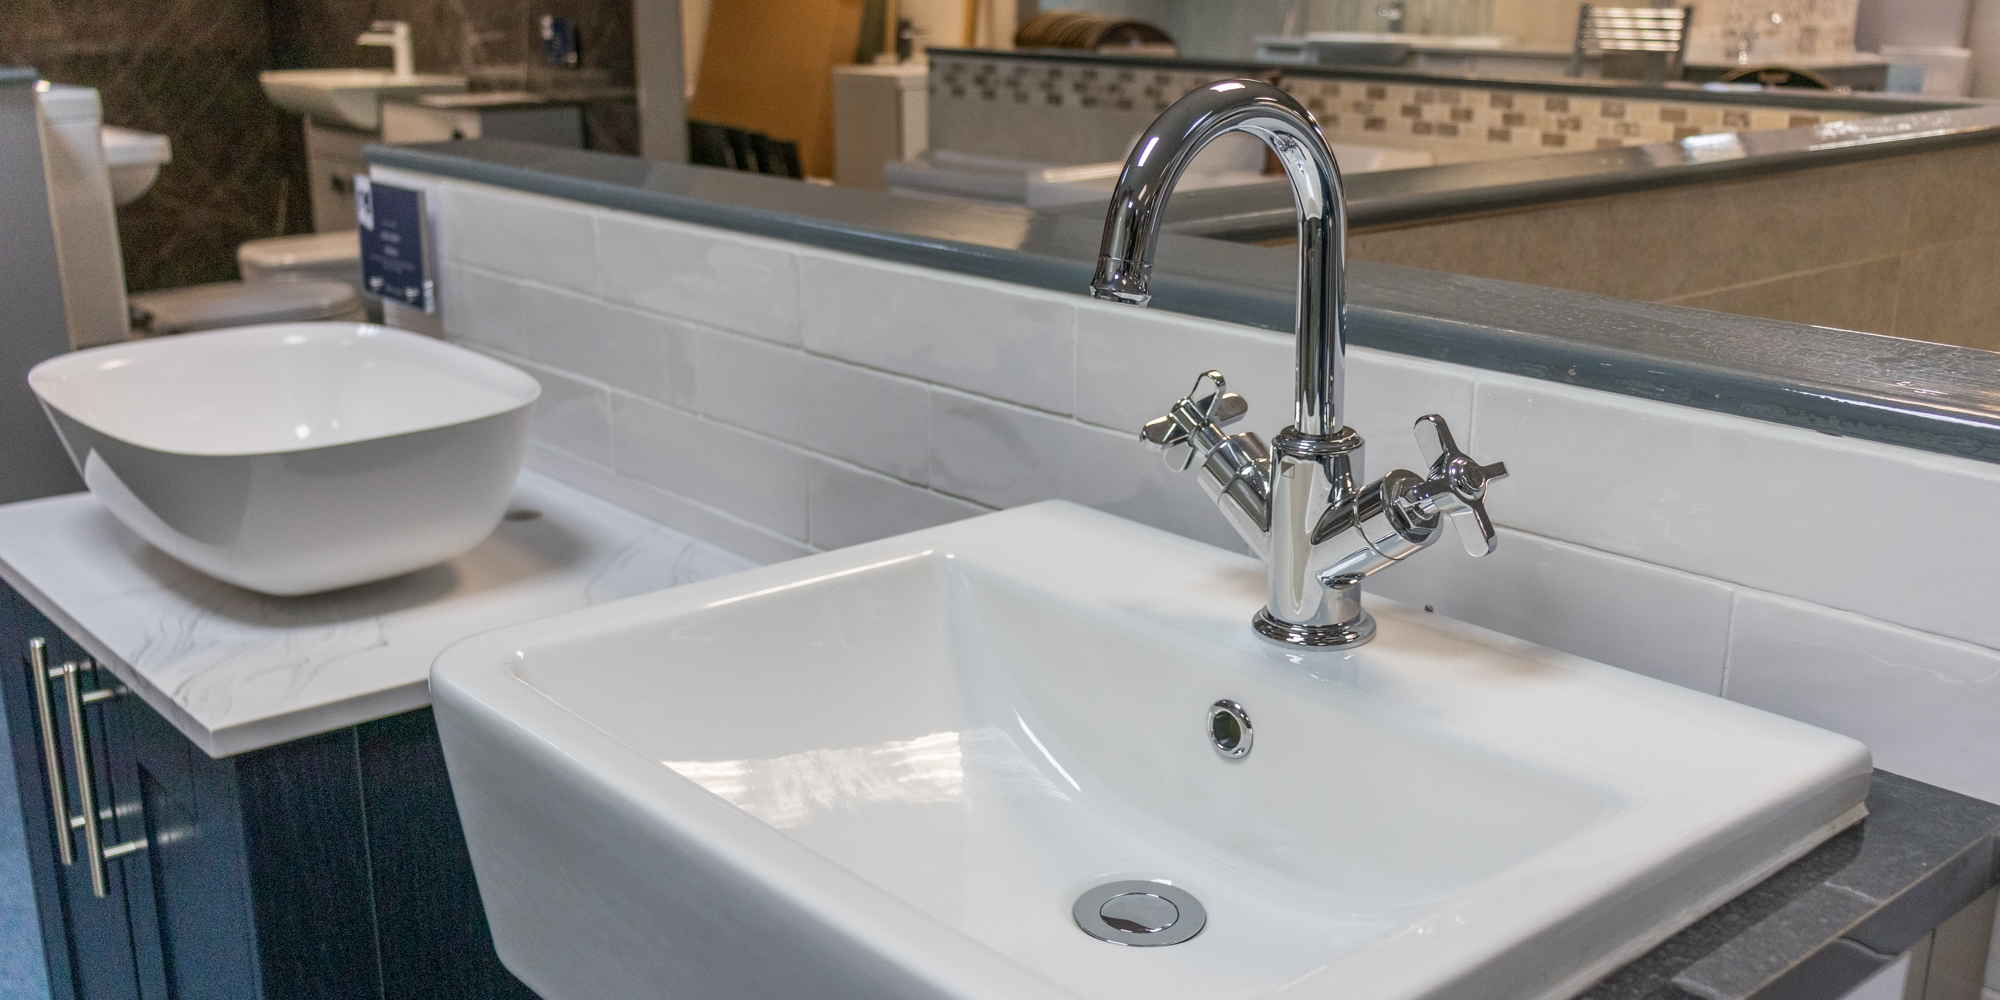 Bathrooms and plumbing, bathroom showroom shrewsbury, plumbing supplies, plumbing materials